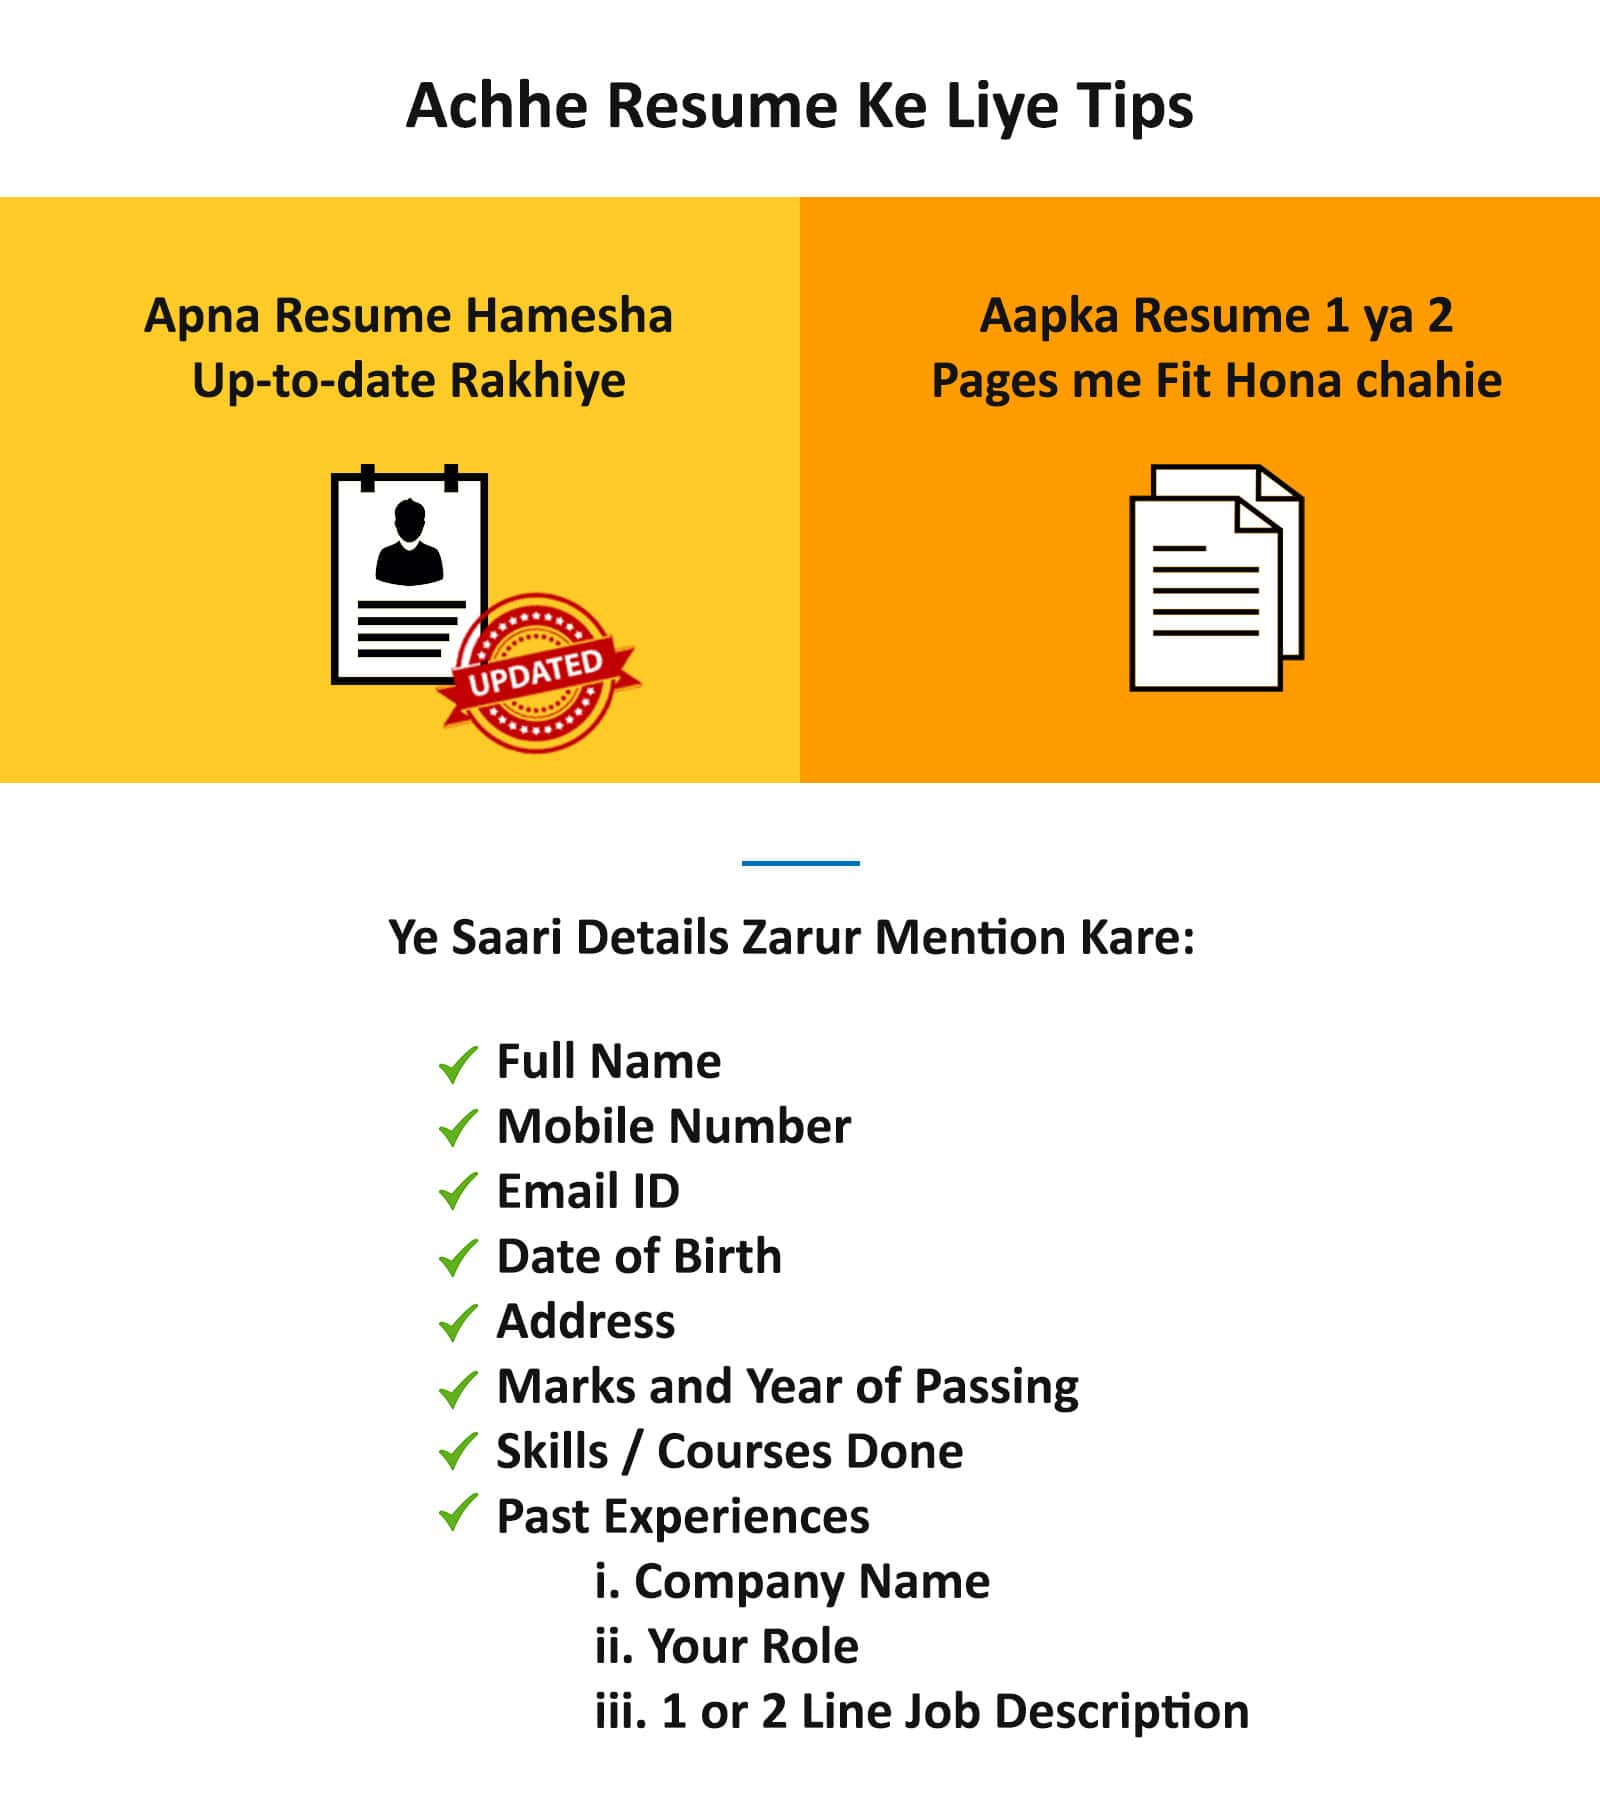 How To Make Resume For Job Interview Tips And Advice Workindia